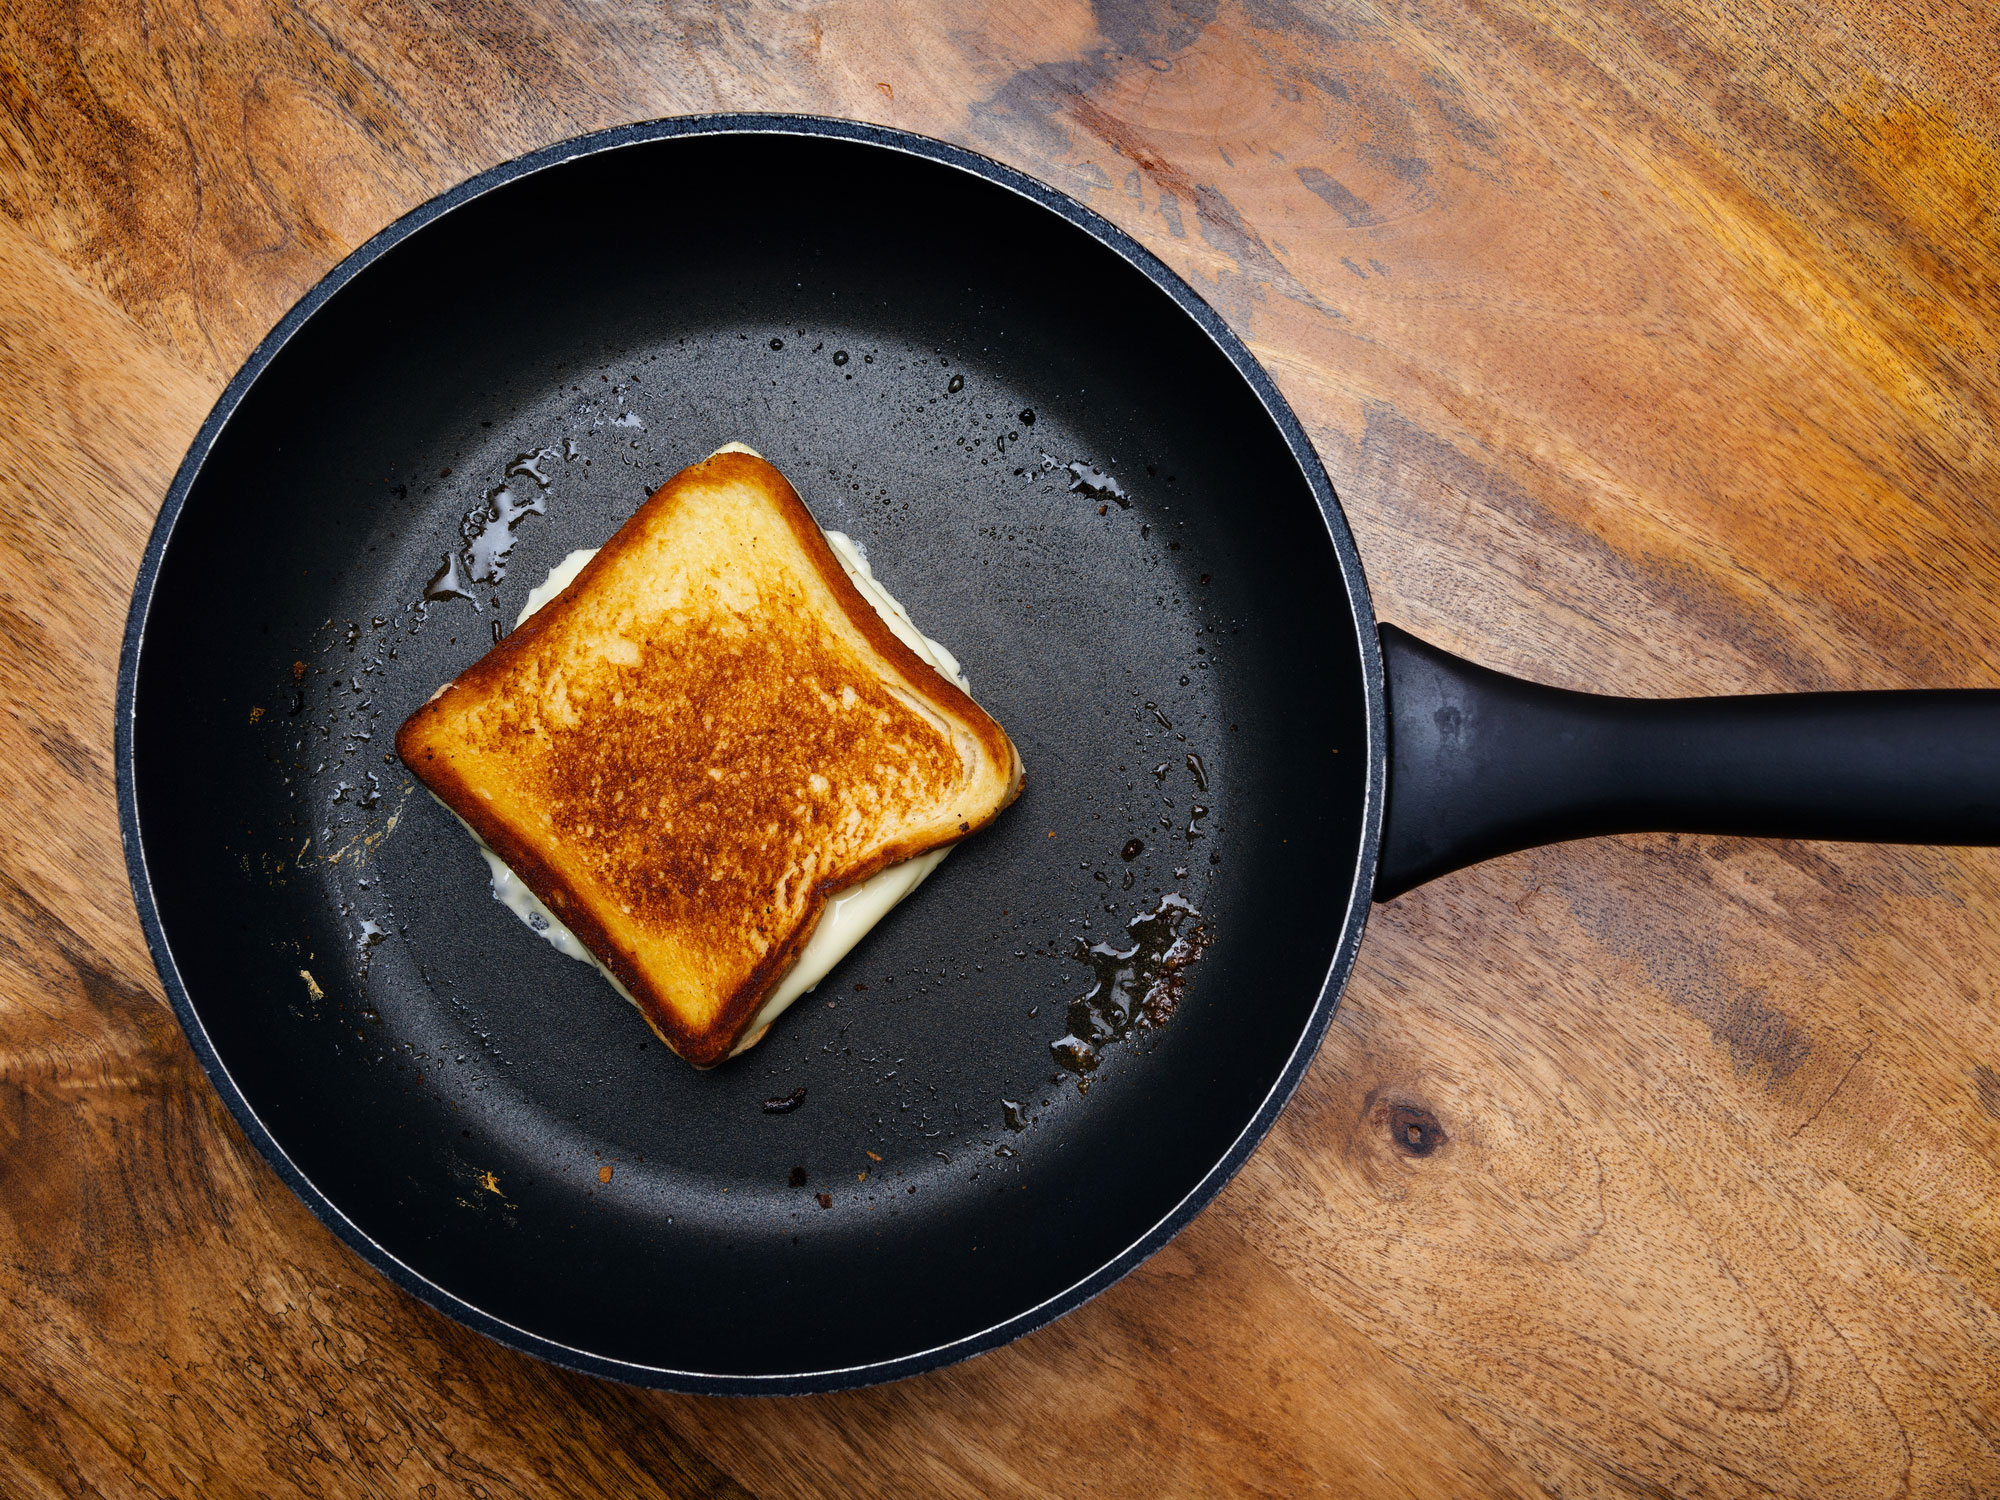 Grilled Cheese in Cast Iron Skillet Getty image